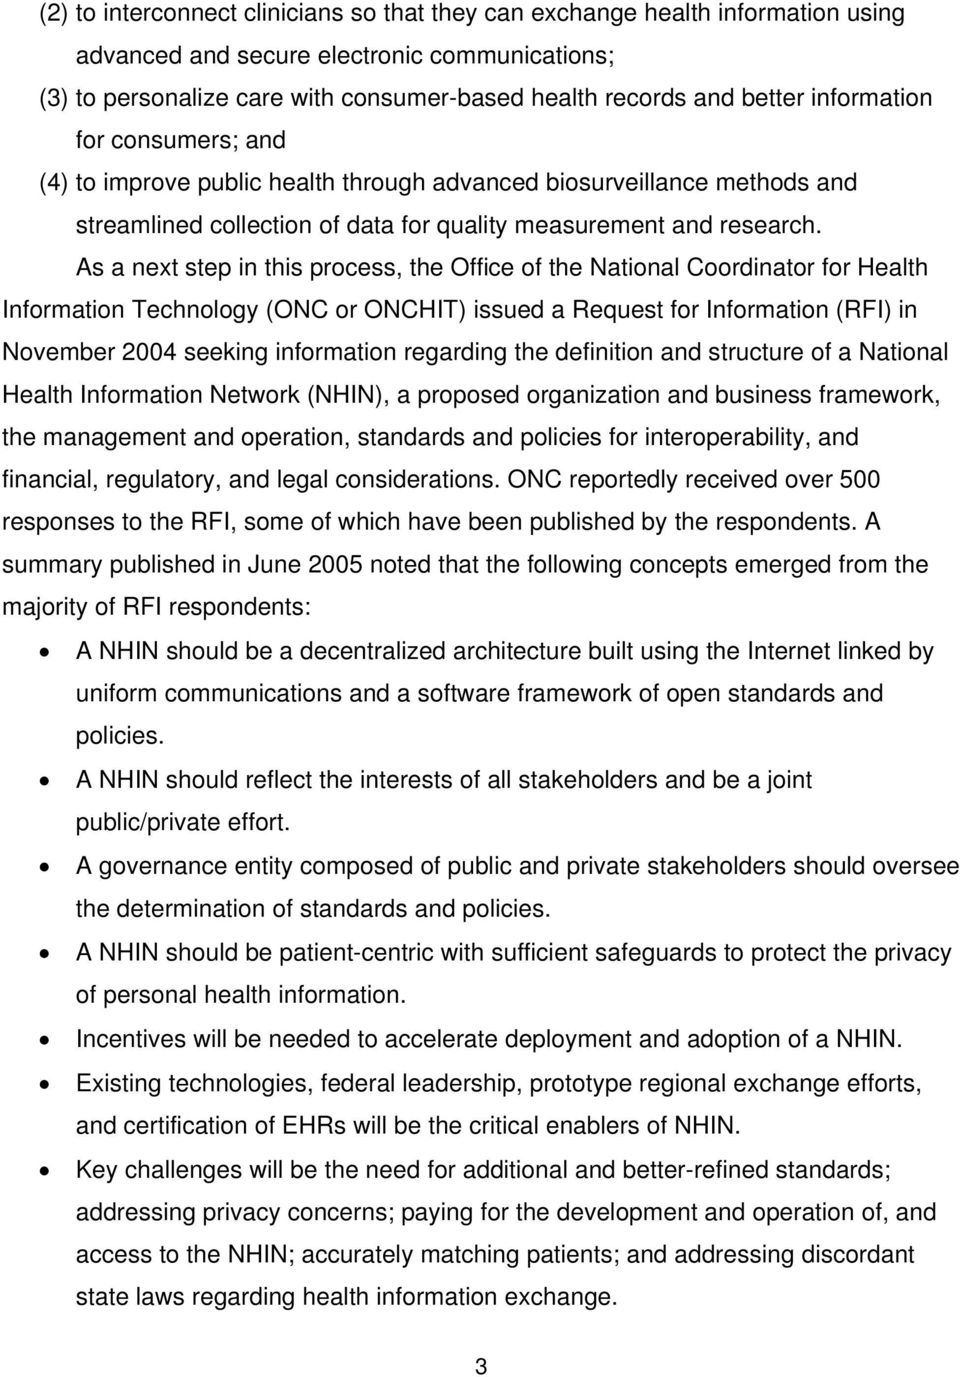 As a next step in this process, the Office of the National Coordinator for Health Information Technology (ONC or ONCHIT) issued a Request for Information (RFI) in November 2004 seeking information